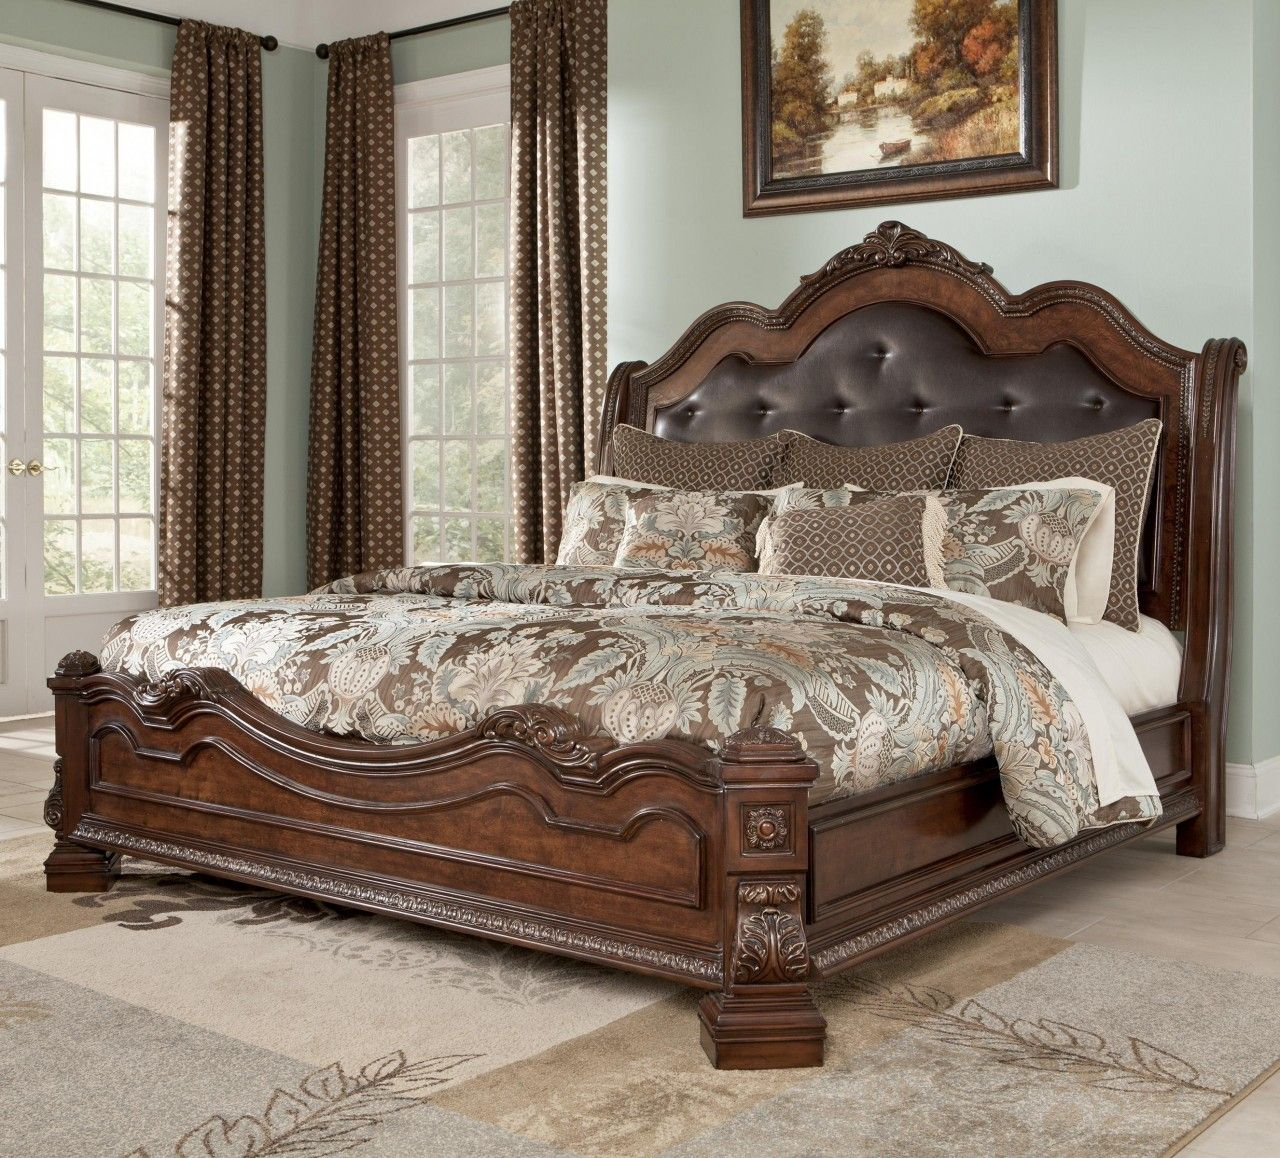 Attractive King Size Bed Frame With Headboard   Http://www.atentevent.net